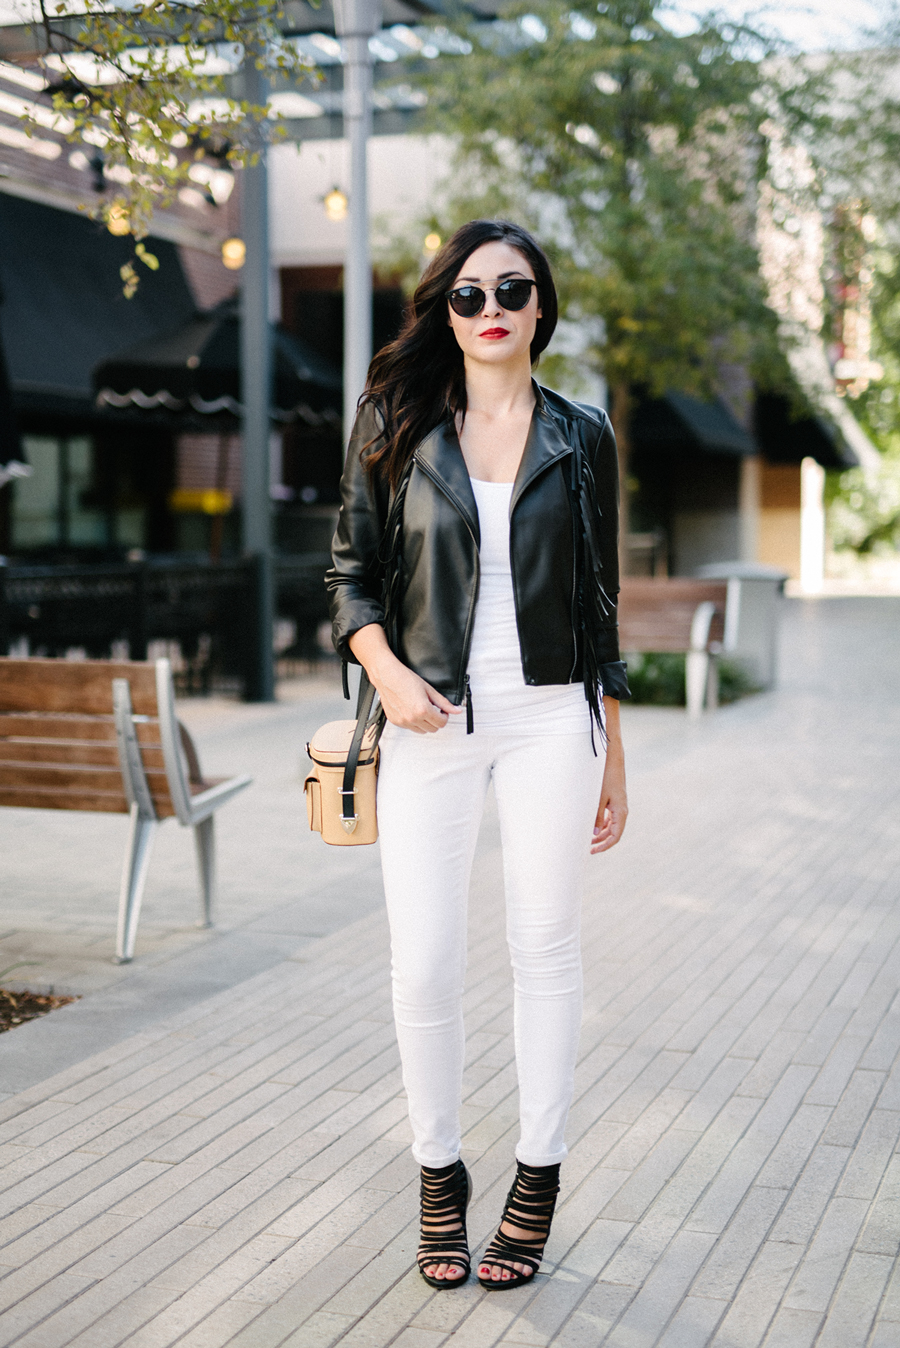 FIXIN-TO-THRILL-EXPRESS-FRINGE-LEATHER-JACKET-REBECCA-MINKOFF-TREND-CARLOS-BARRON-FALL-OCTOBER-ATX-AUSTIN-STYLE-BLOG-FW15-TRENDY-CHIC-GLAM-FASHION-TEXAS-8